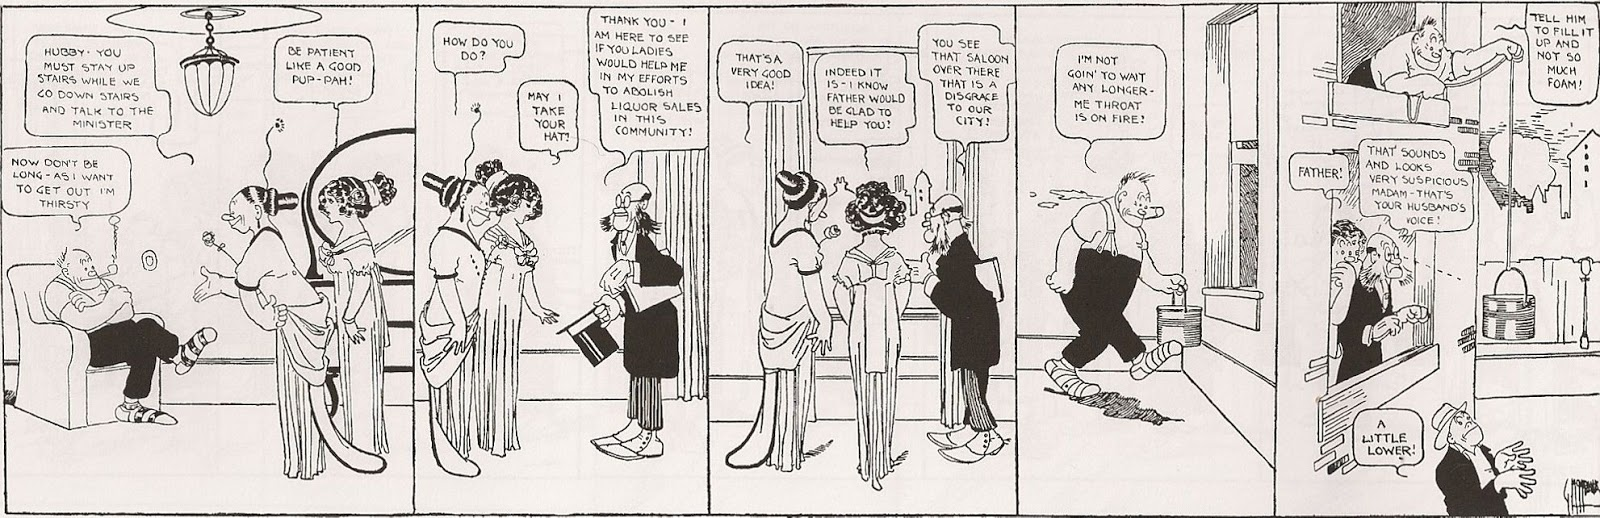 Quite Jiggs and maggie comic strip